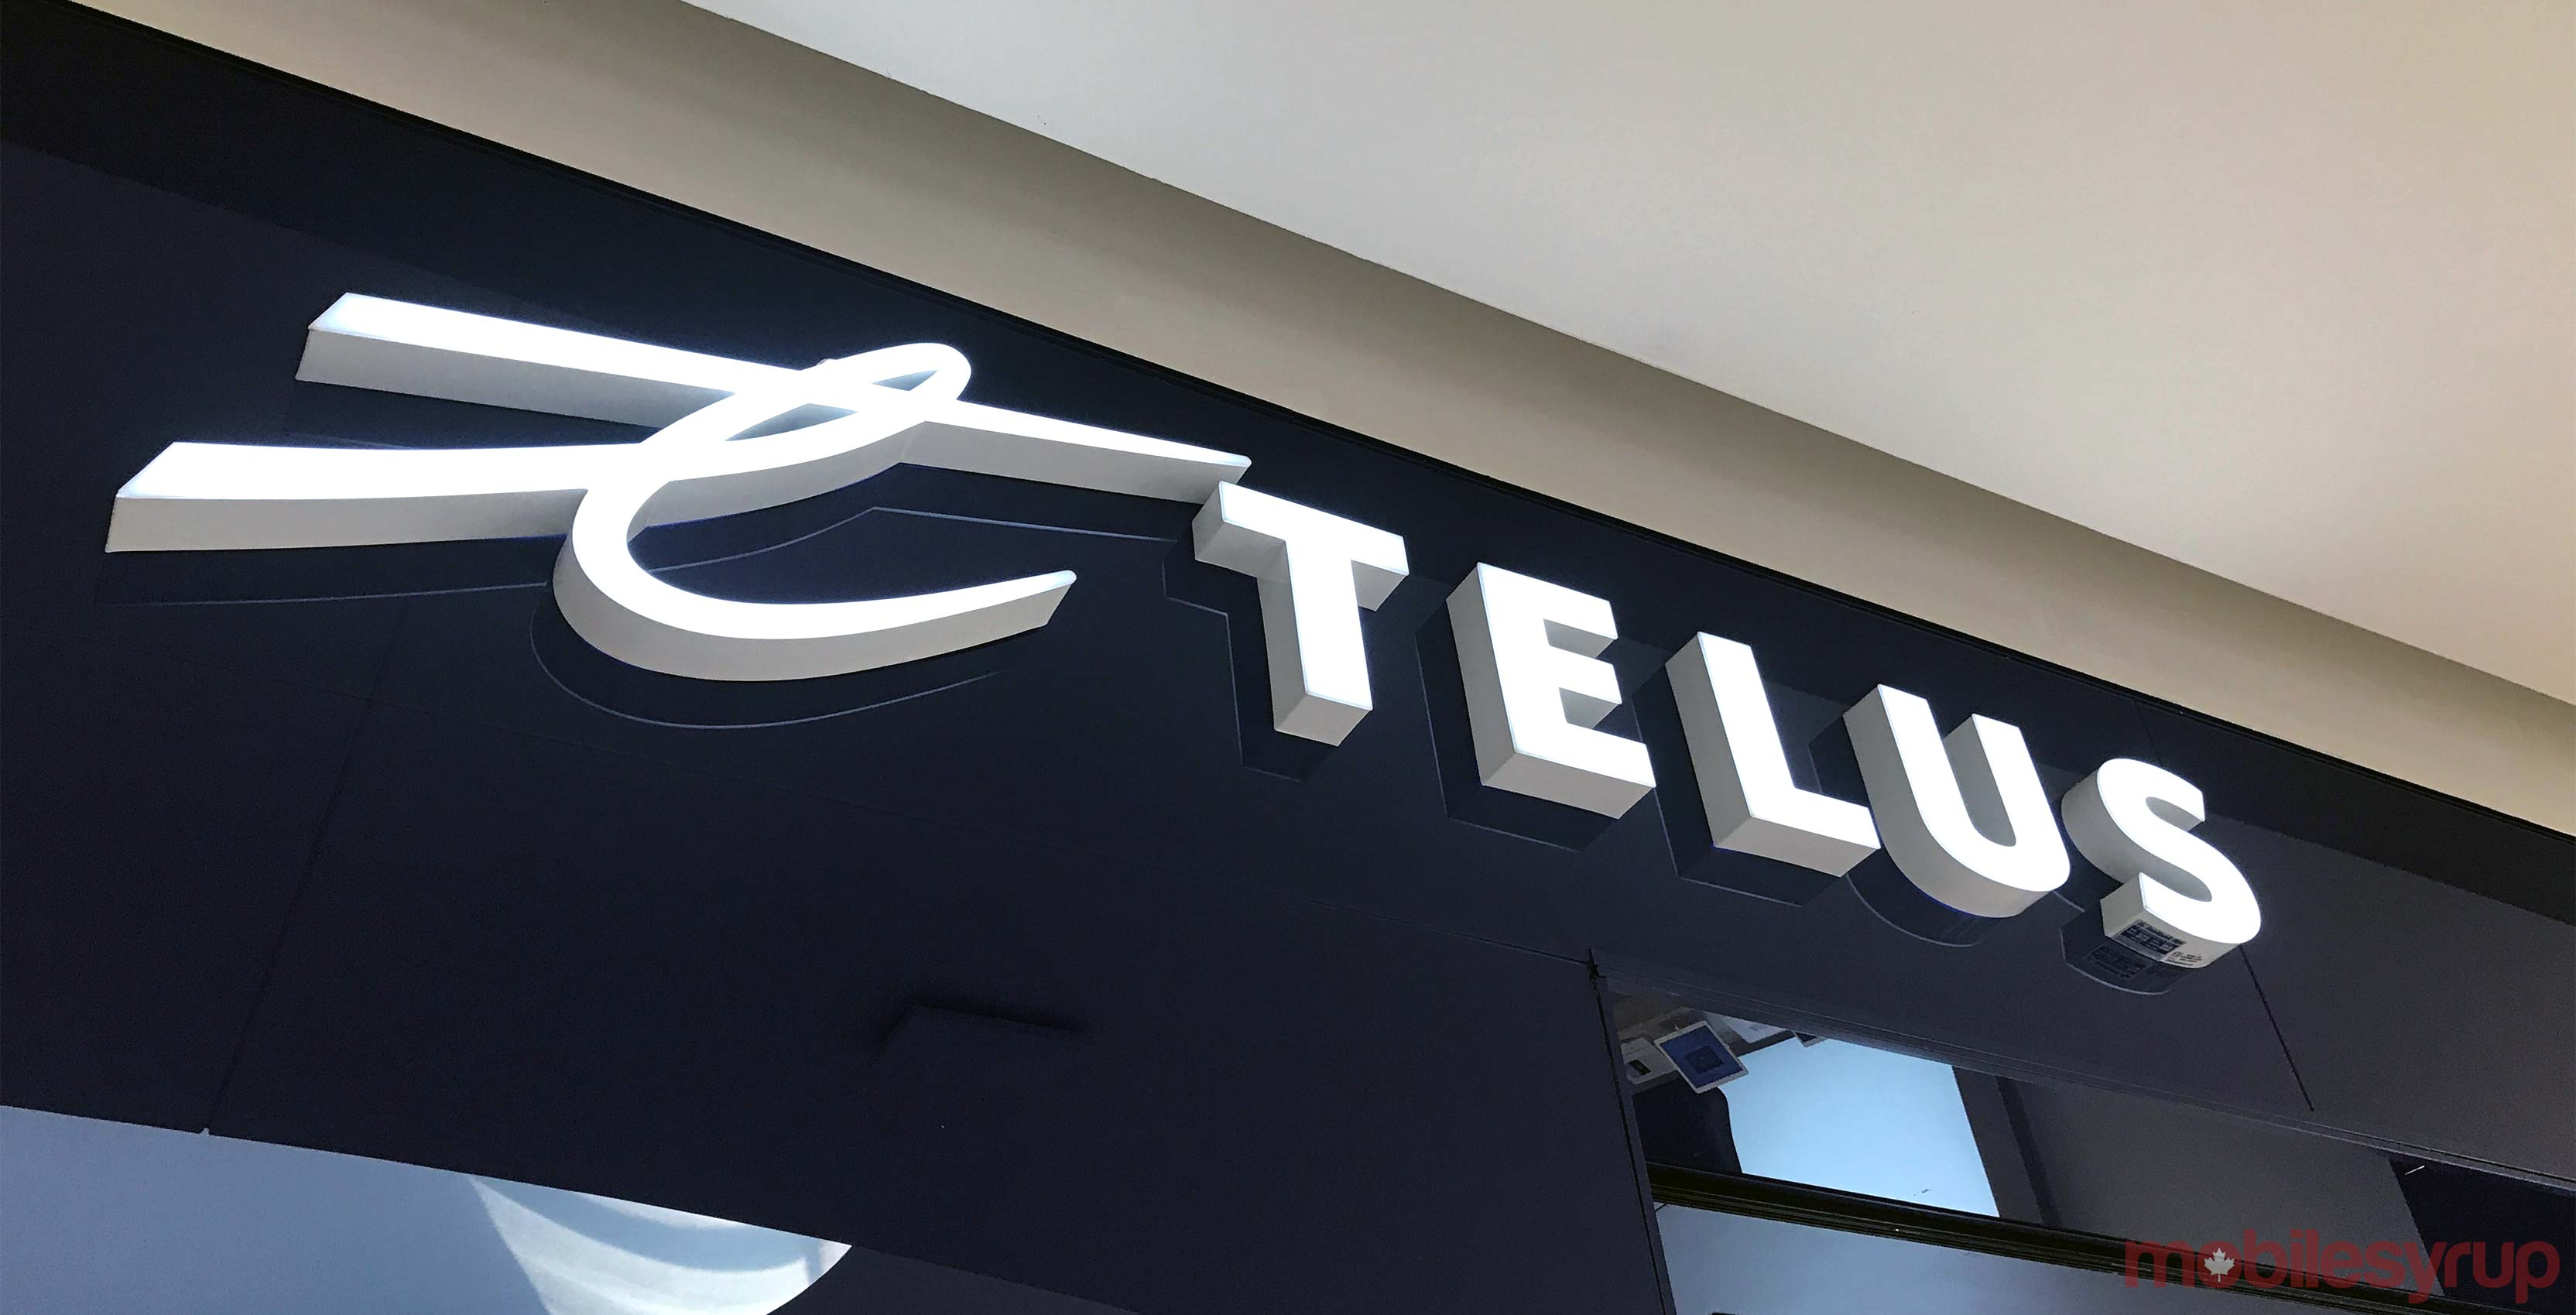 Telus logo on wall